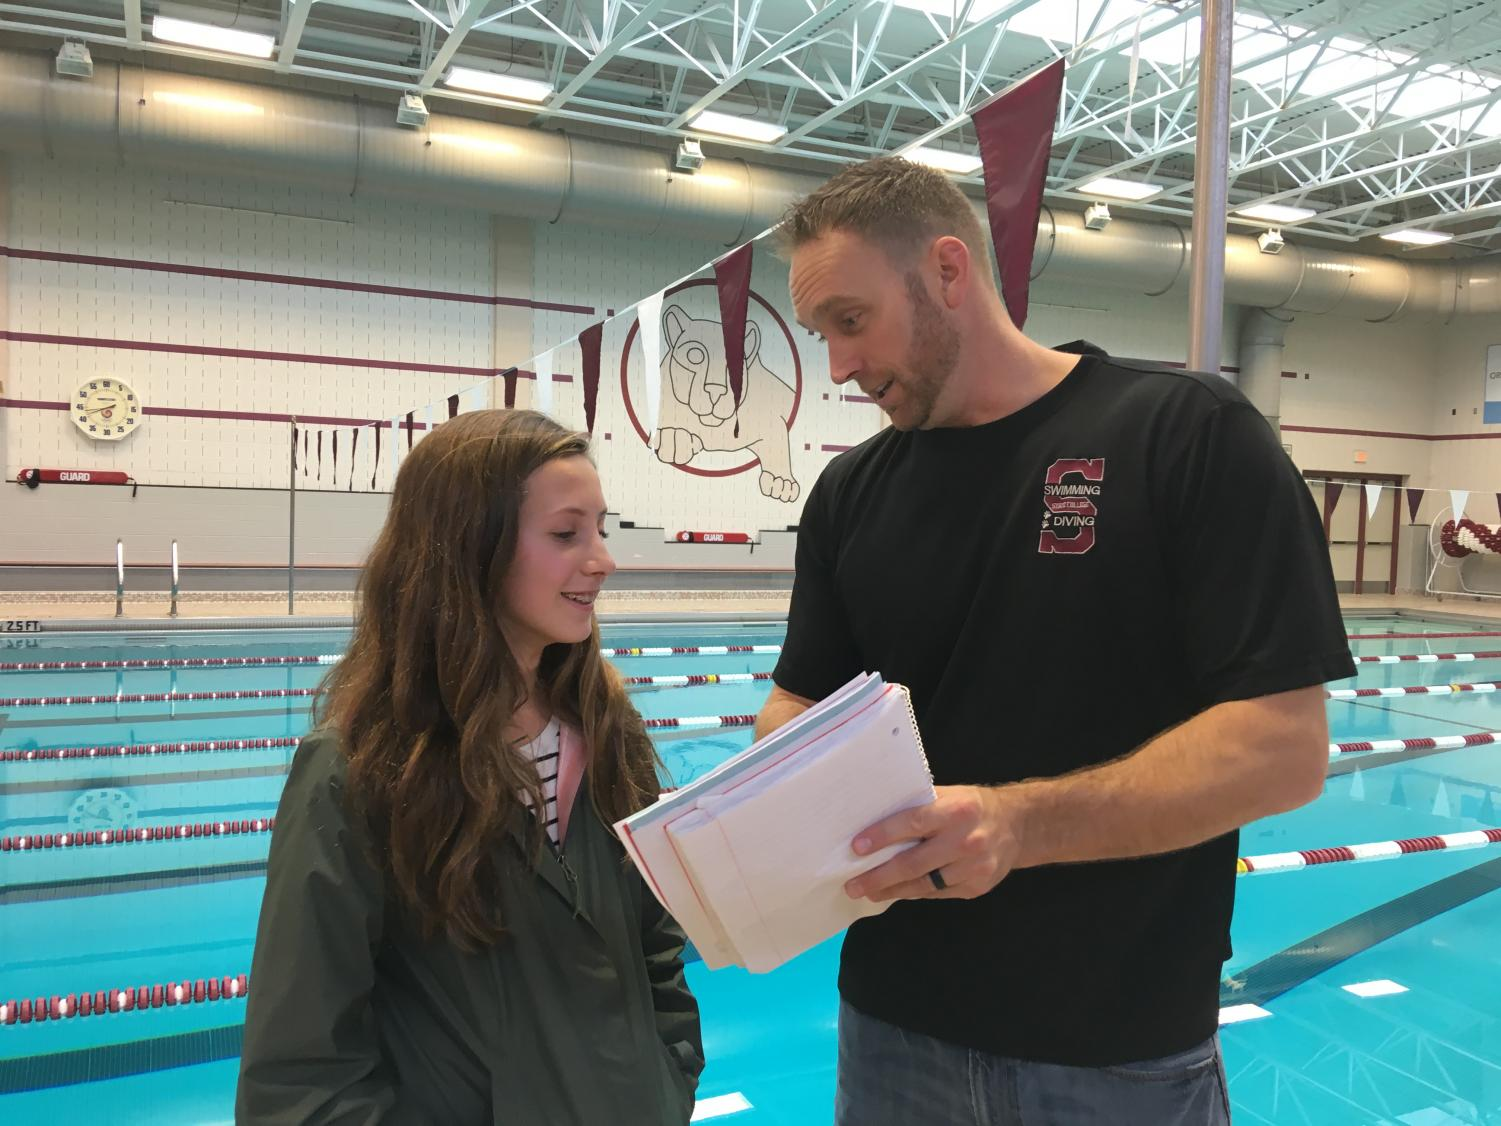 """After the pre-season meeting for swimming and diving, sophomore Aubrey Zuech and head coach Aaron Workman meet to discuss goals for the new season. With a strong team for both girls and boys and a new head coach, the team hoped for an even more successful season than last year. """"I think it's going to be a good season. Different coaches bring out different things in swimmers, so I think there's a chance we could be more successful [than last year],"""" Zuech said."""